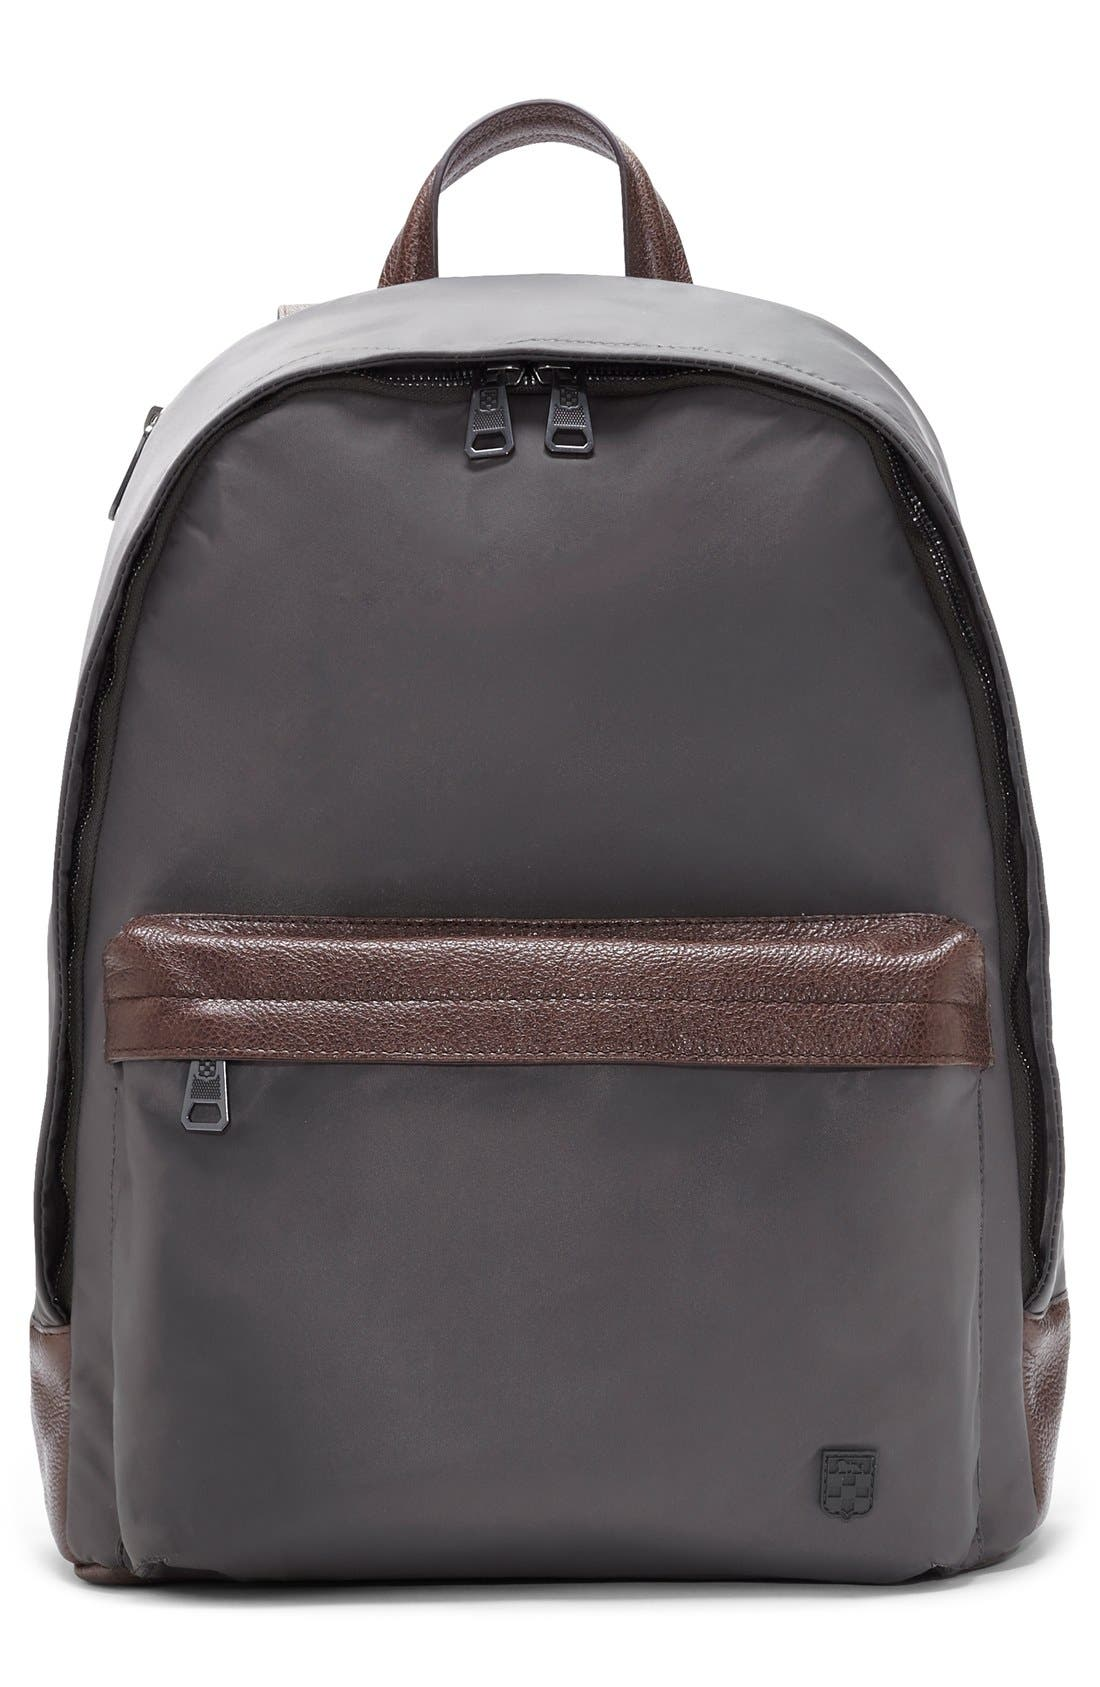 'Tolve' Nylon Backpack,                         Main,                         color, 021